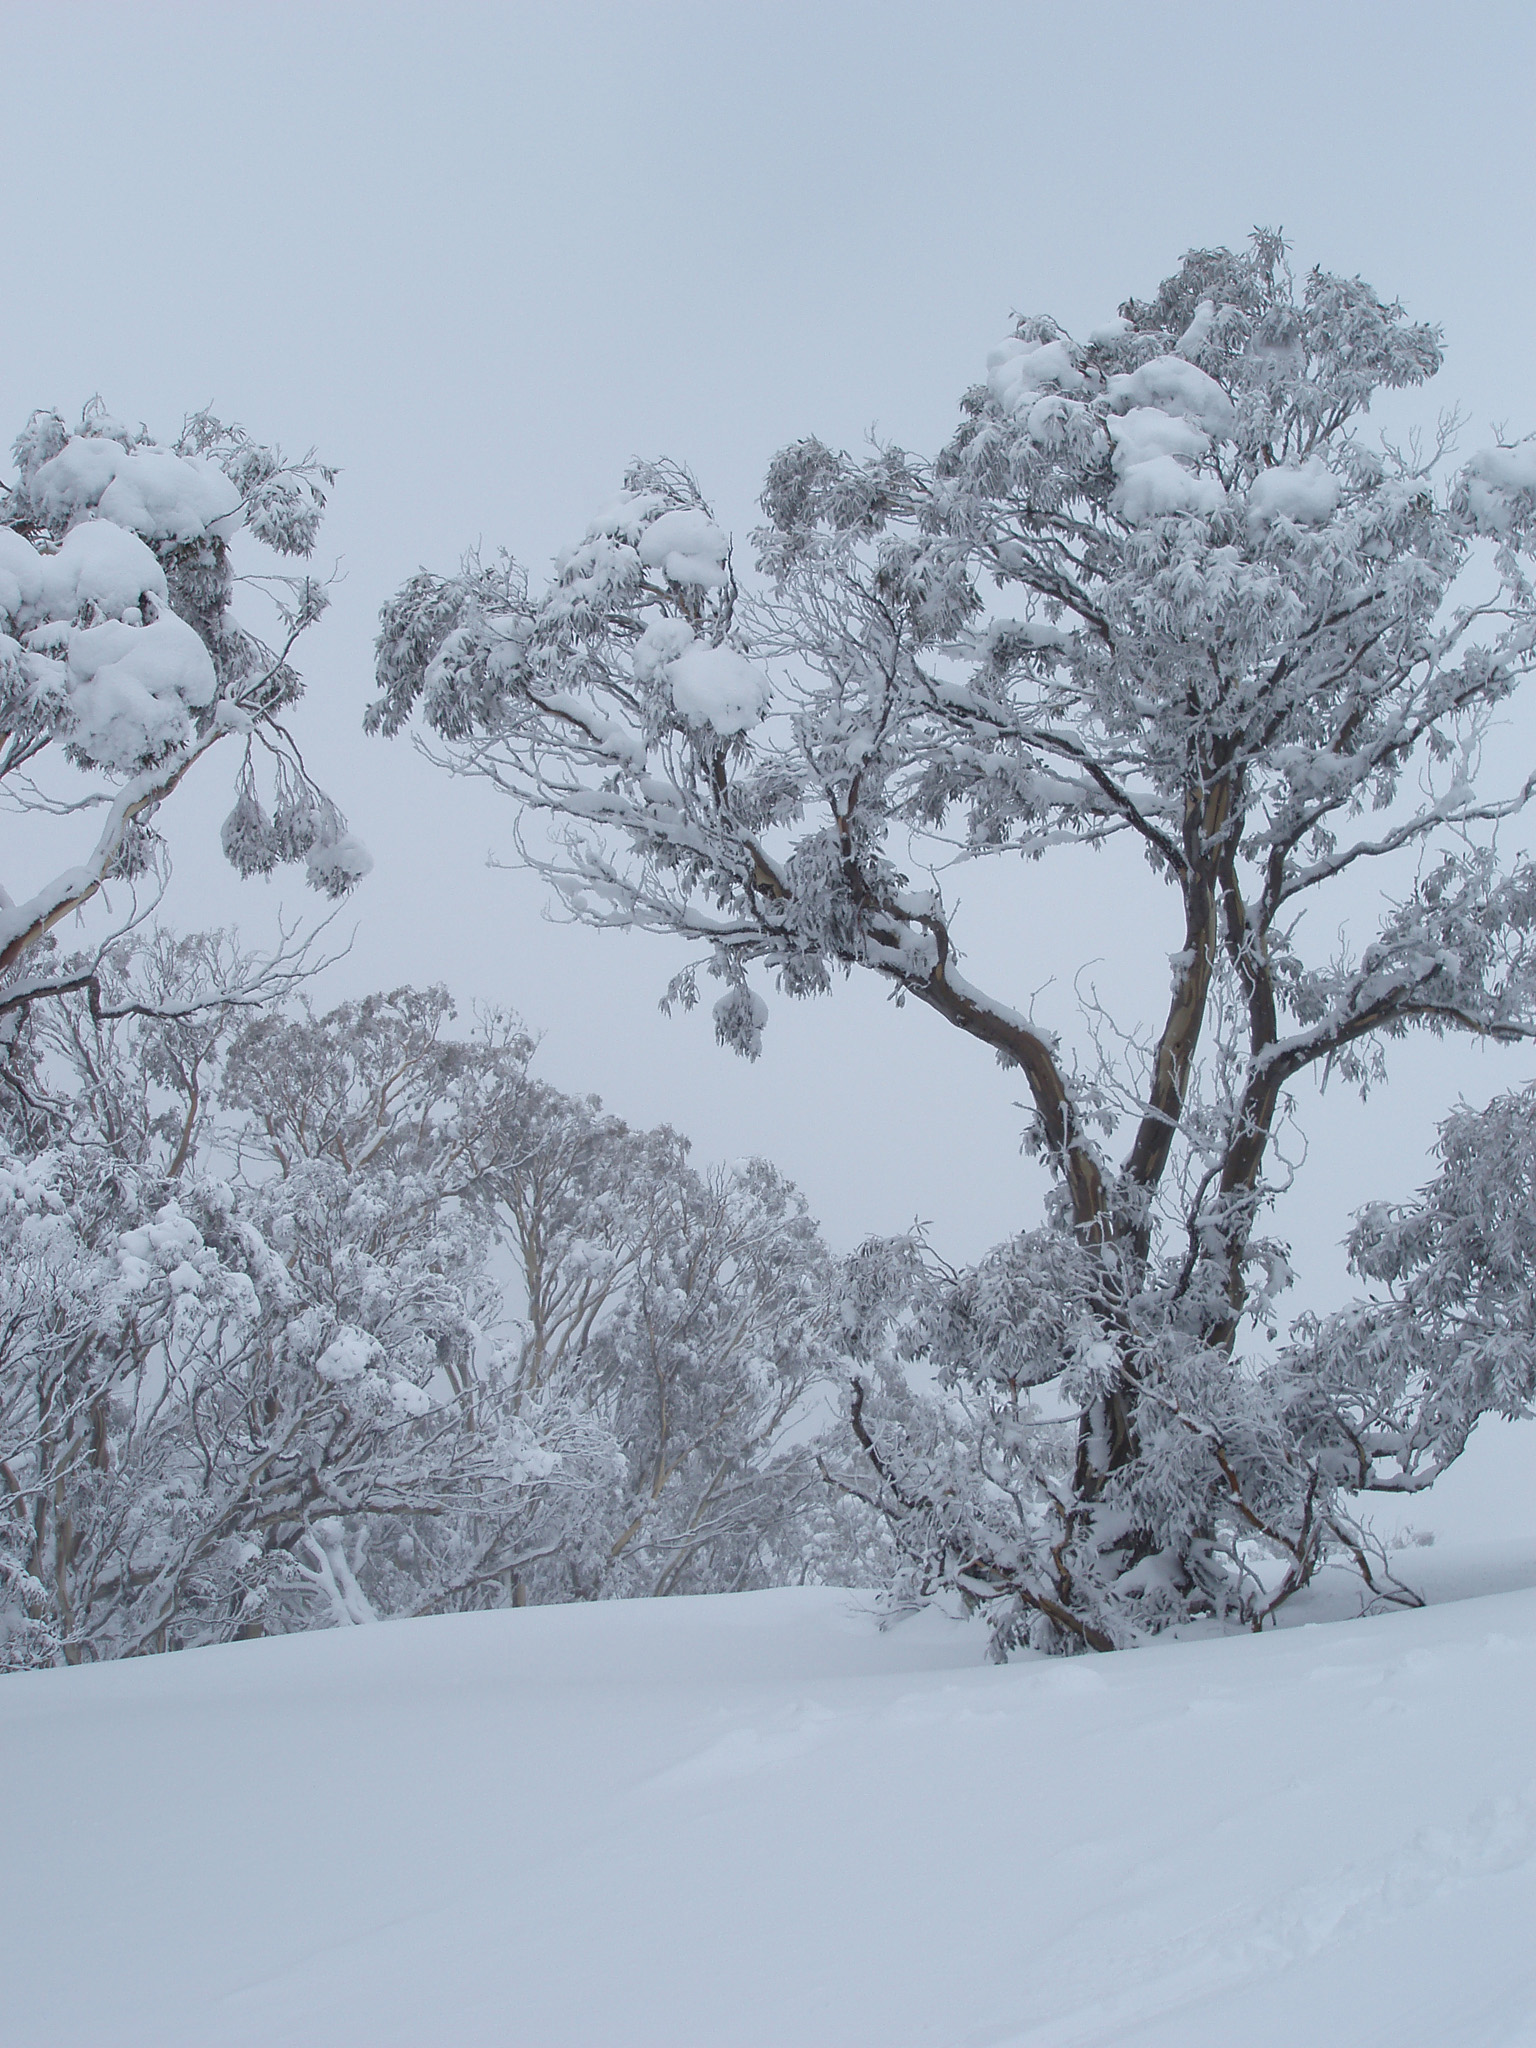 Beautiful Scenery of Winter Snow Gum Australia with Tall Trees Filled with Snow.